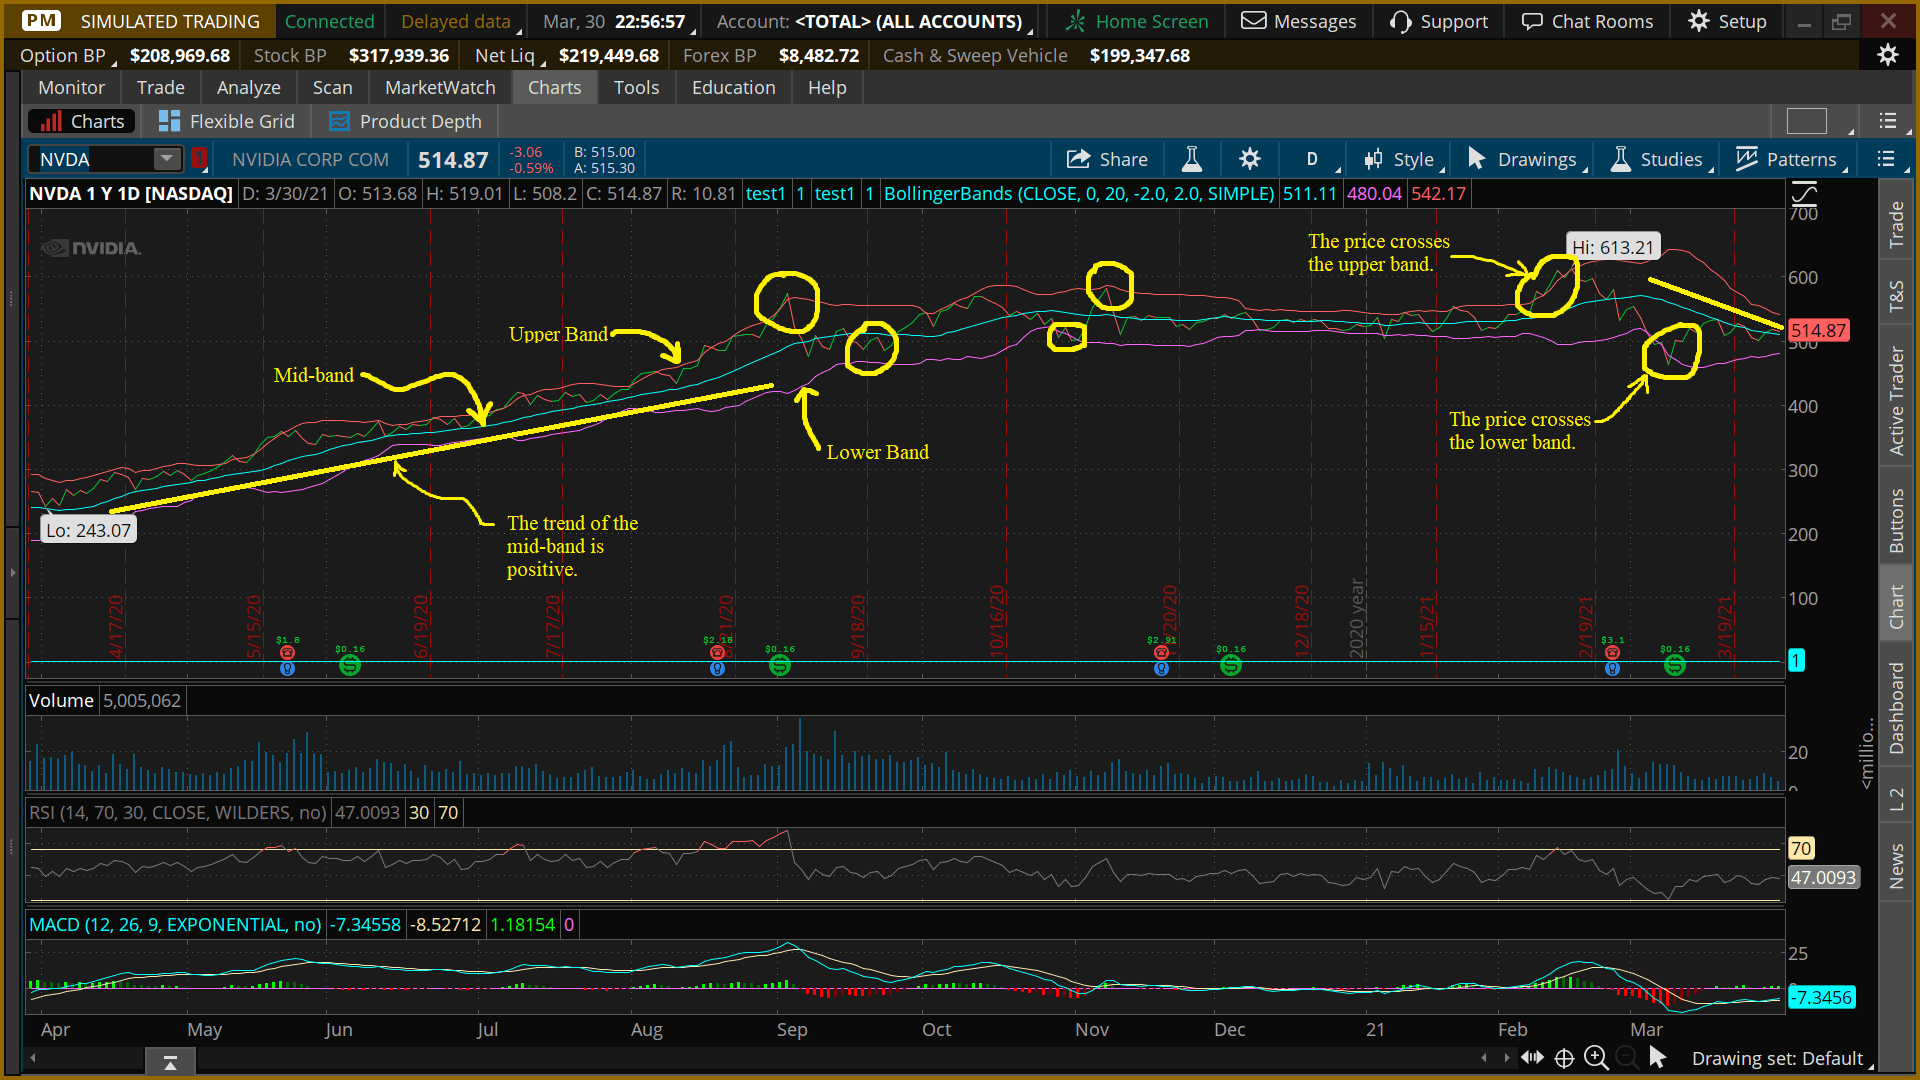 bollinger bands - nvidia stocks